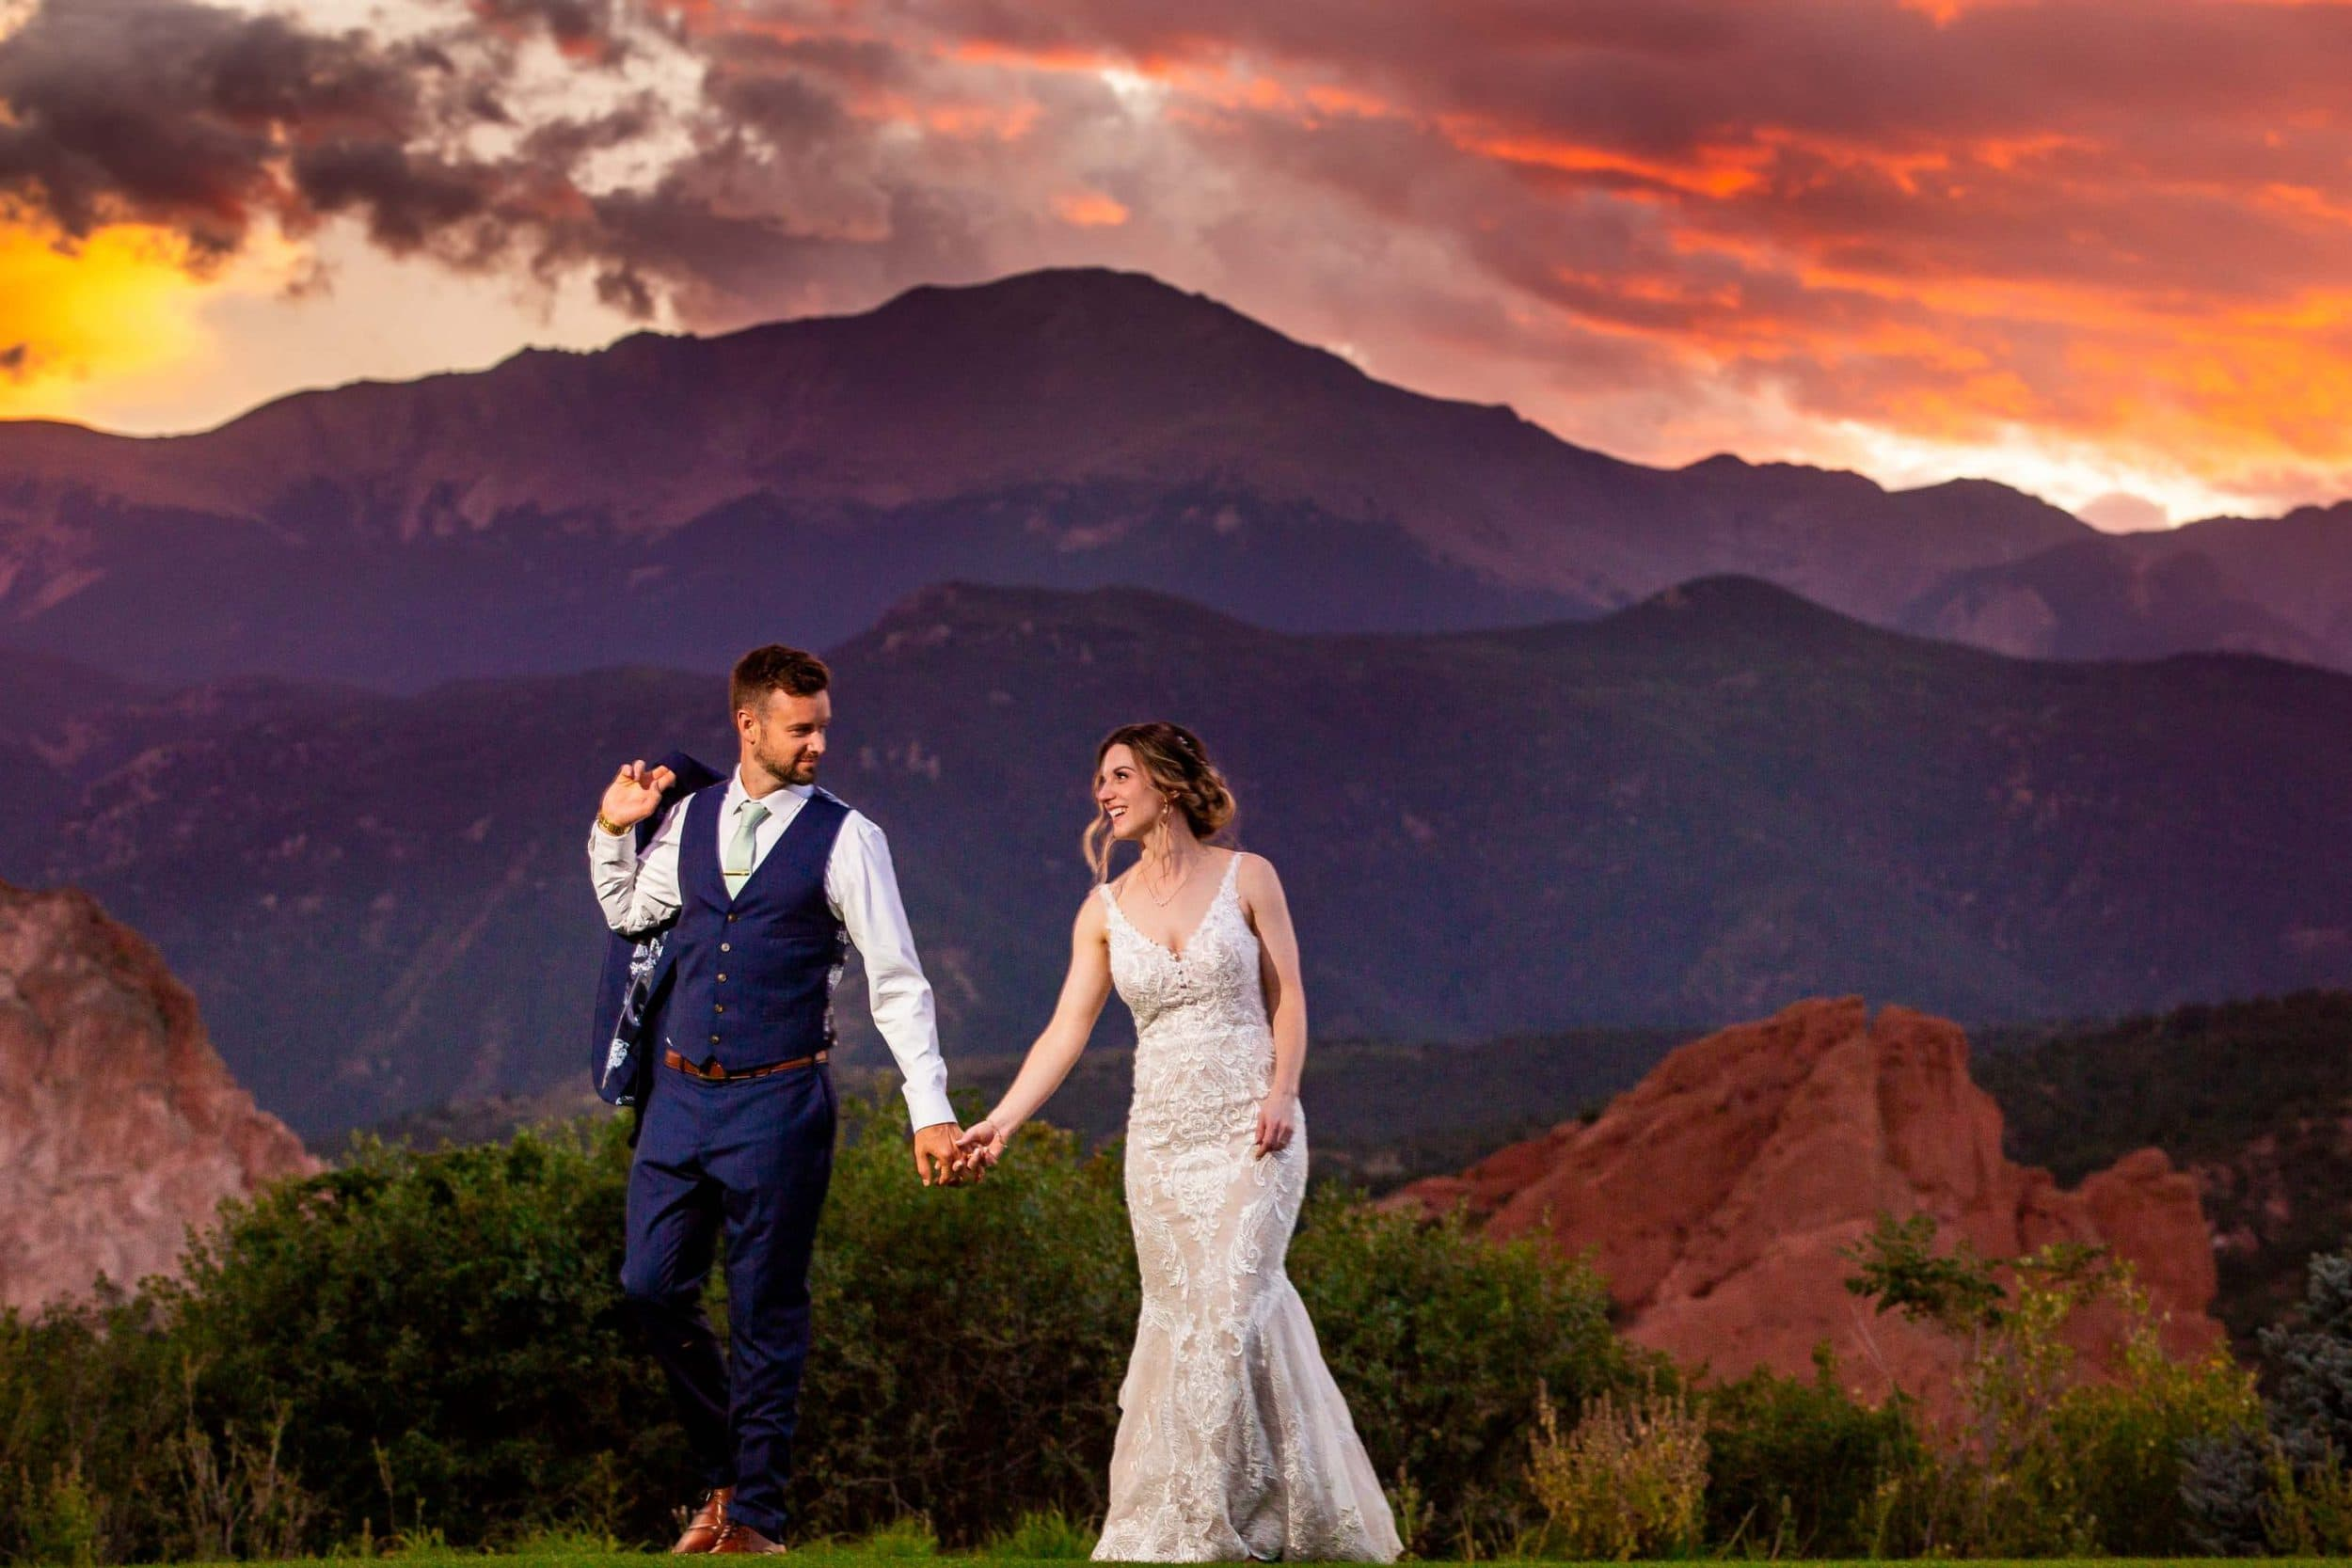 A bride and groom walk hand in hand at sunset with Garden of the Gods in the background.